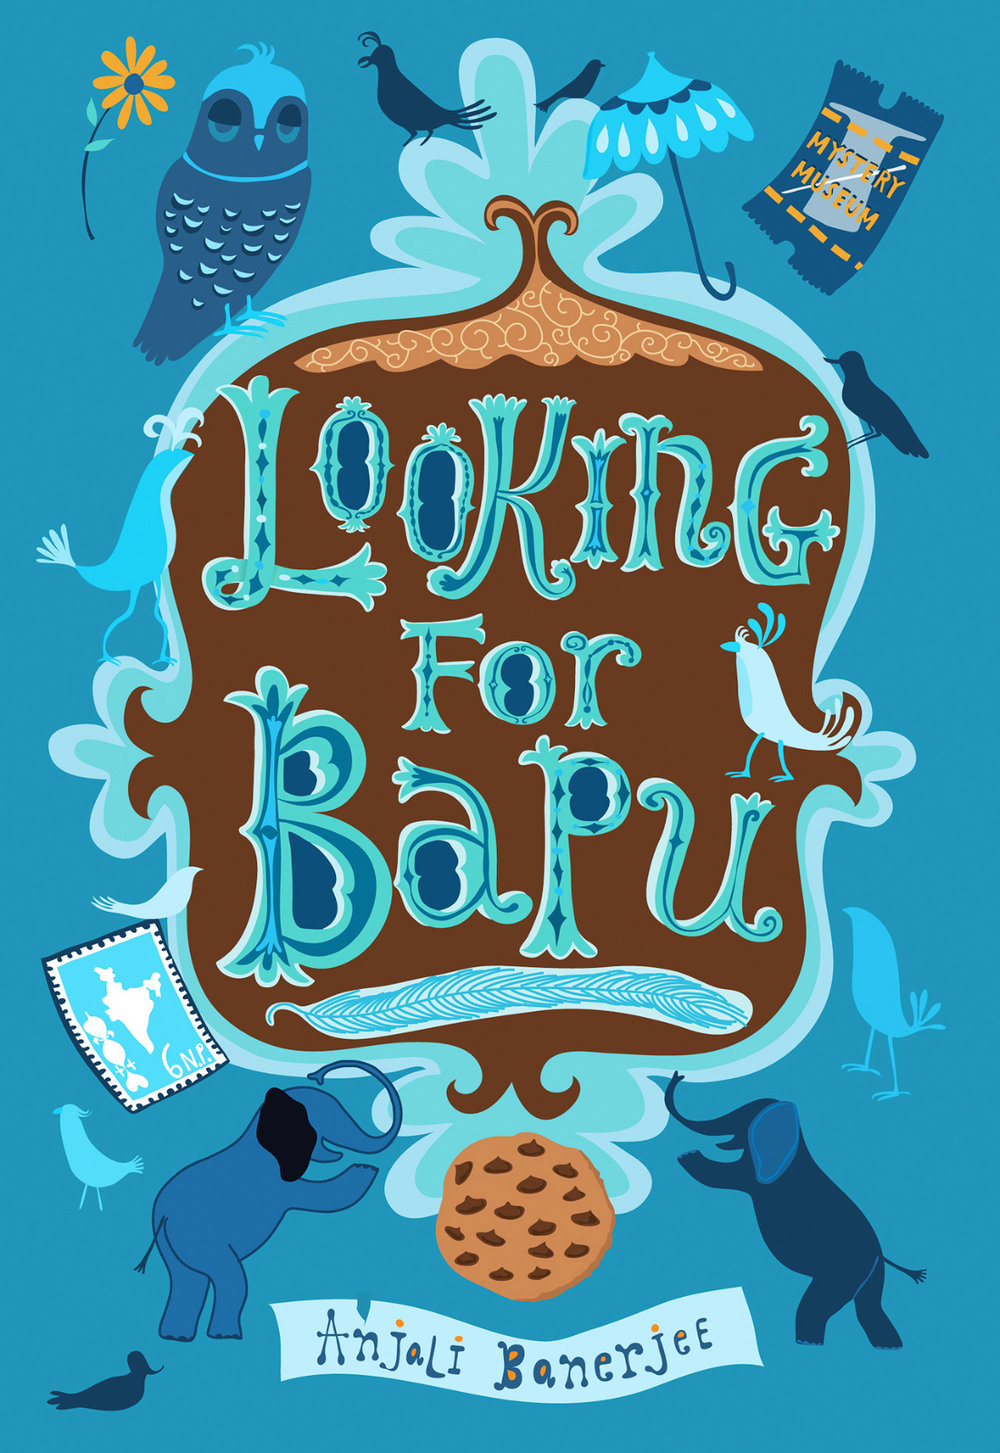 Copy of Looking for Bapu book cover